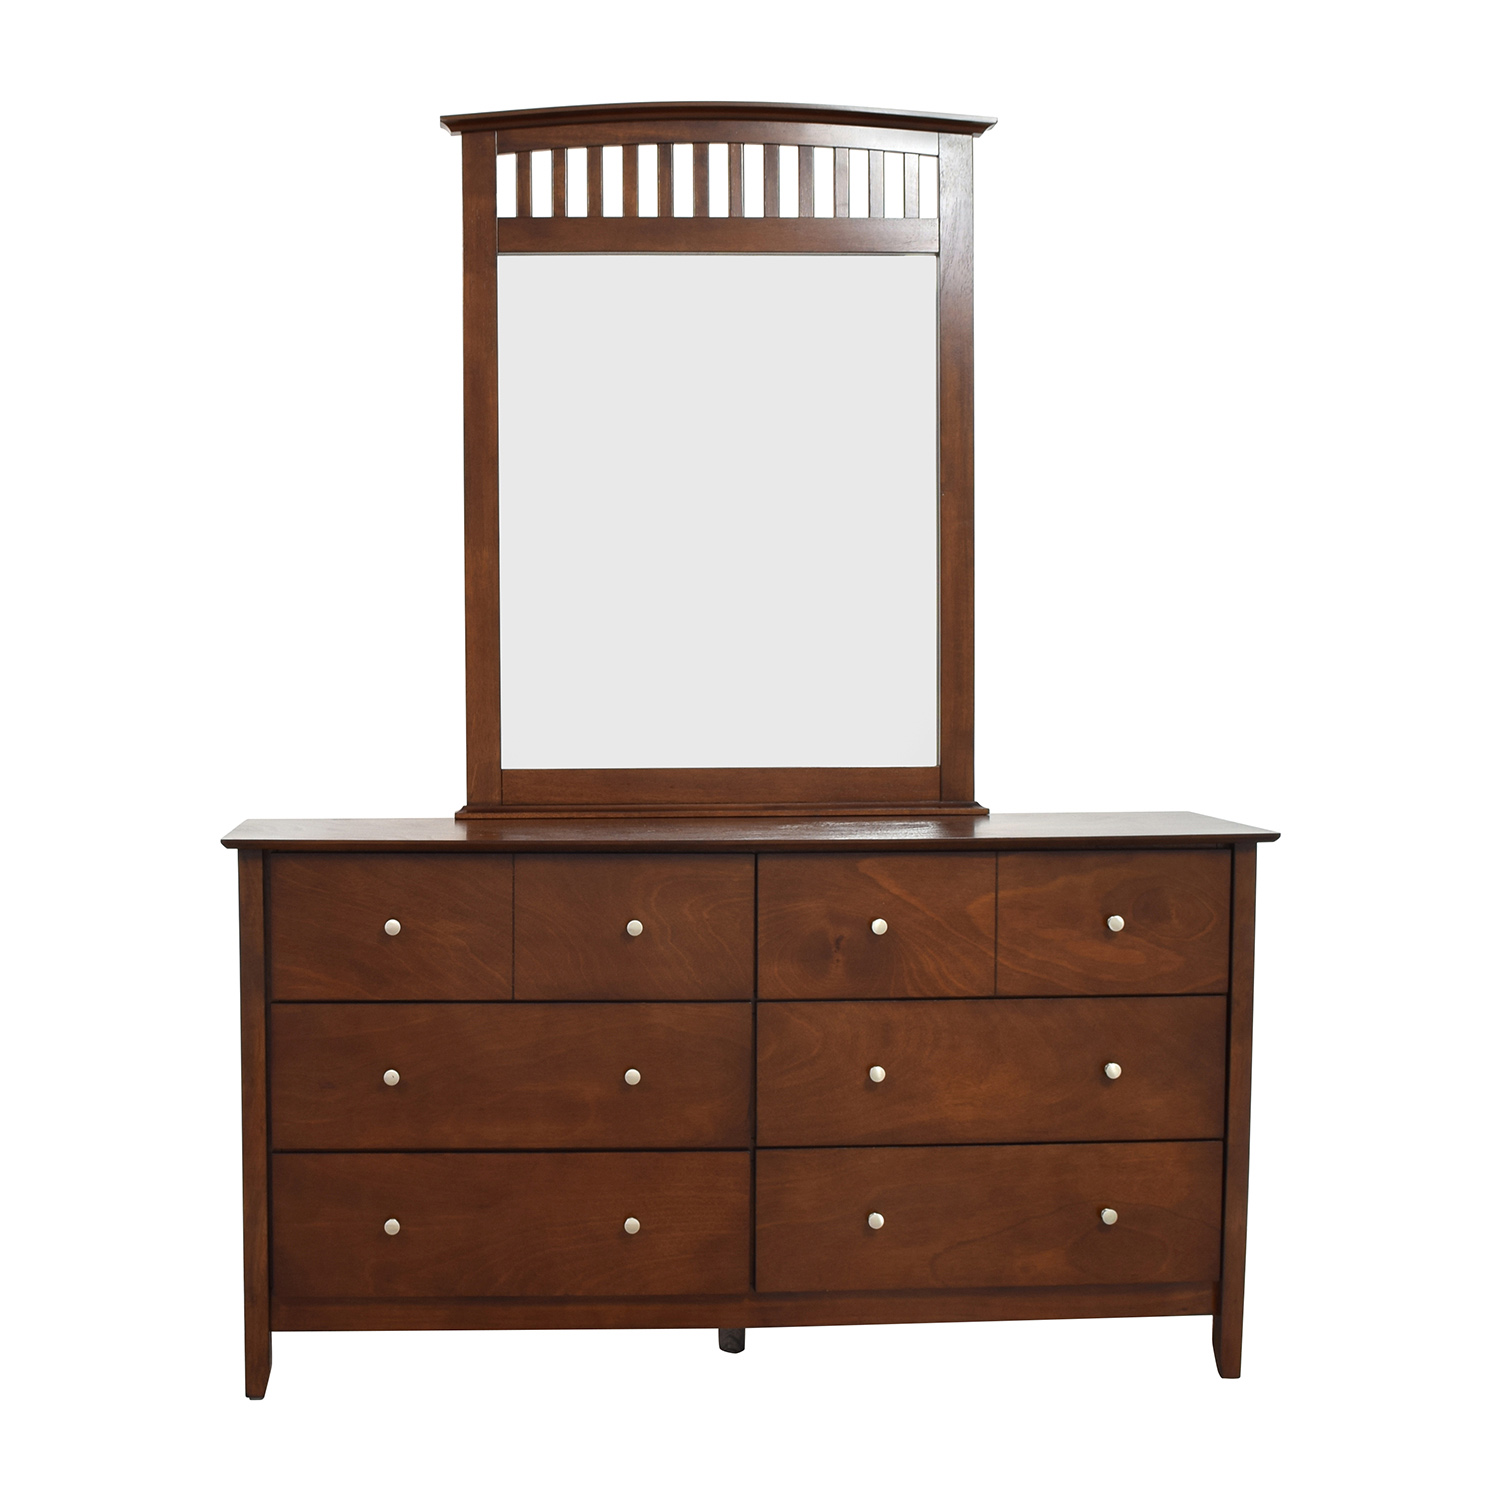 Bob's Furniture Eight-Drawer Dresser and Mirror sale